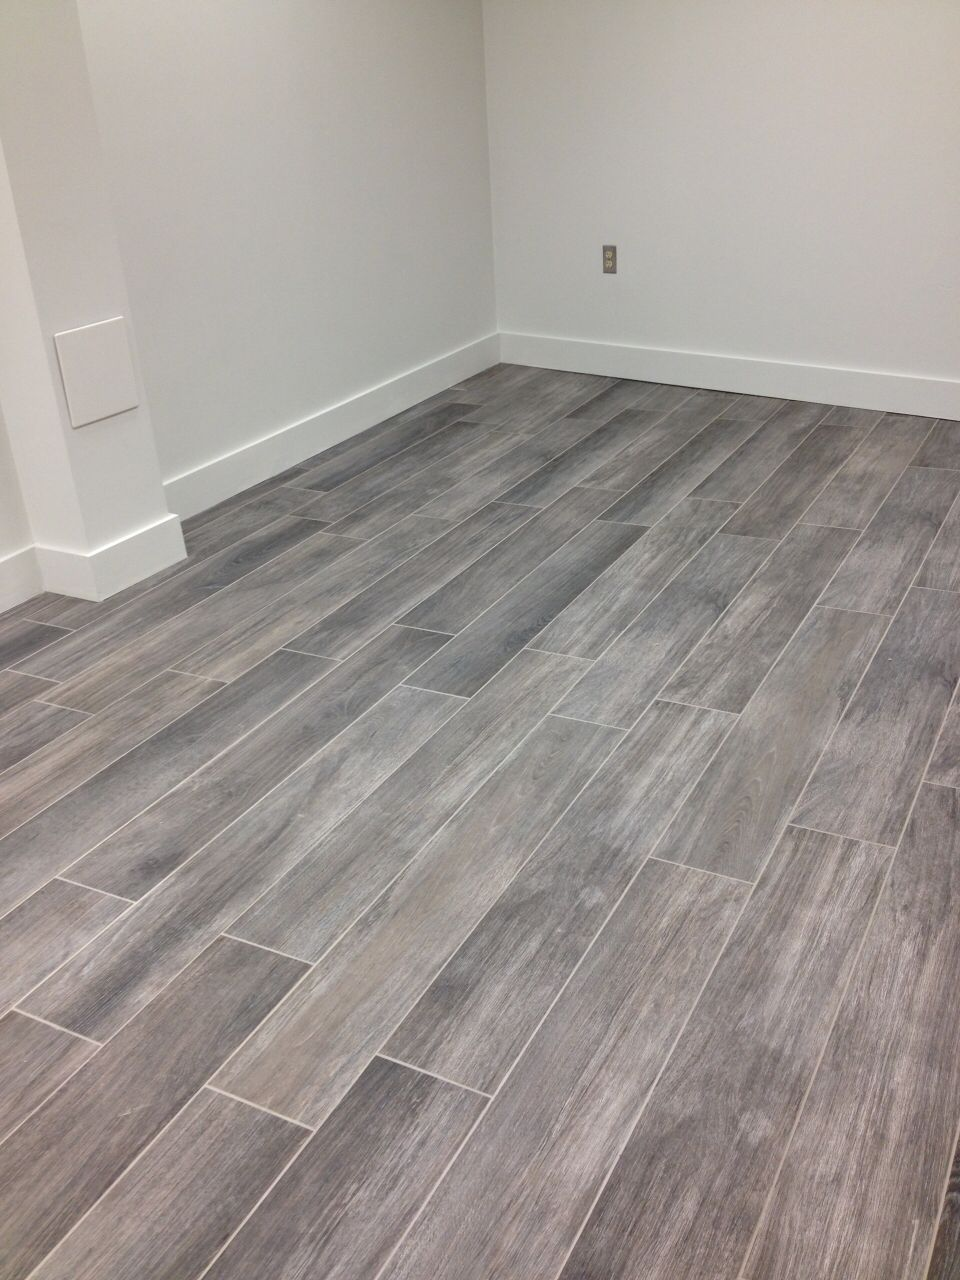 Porcelain grey wood tile decor and architecture pinterest our porcelain tile lux wood installed on this room floor dailygadgetfo Images